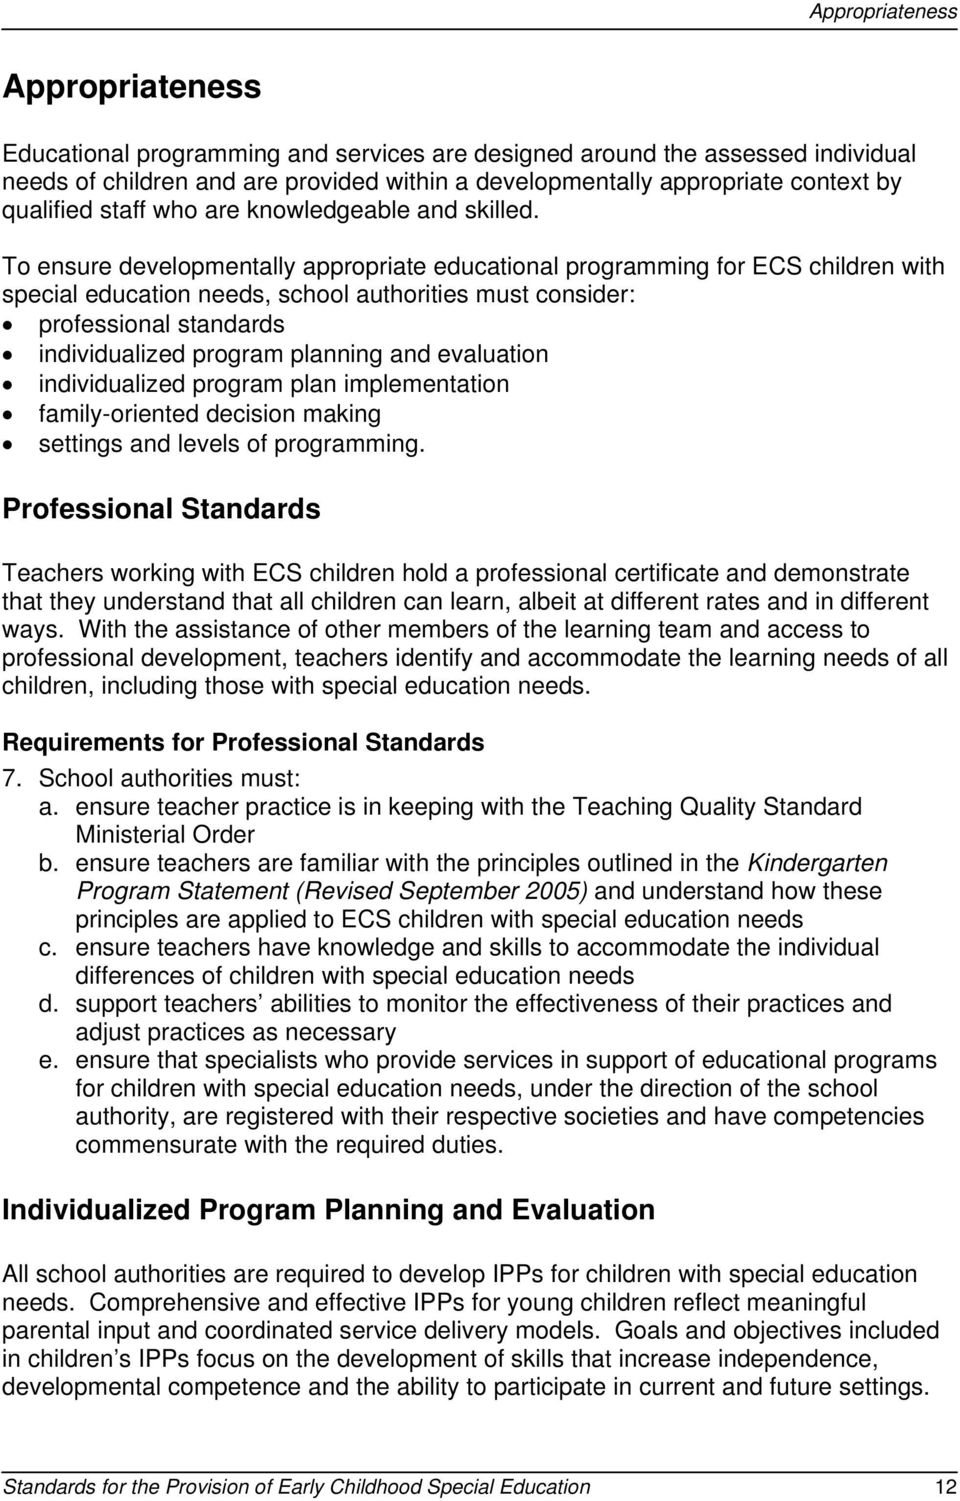 To ensure developmentally appropriate educational programming for ECS children with special education needs, school authorities must consider: professional standards individualized program planning